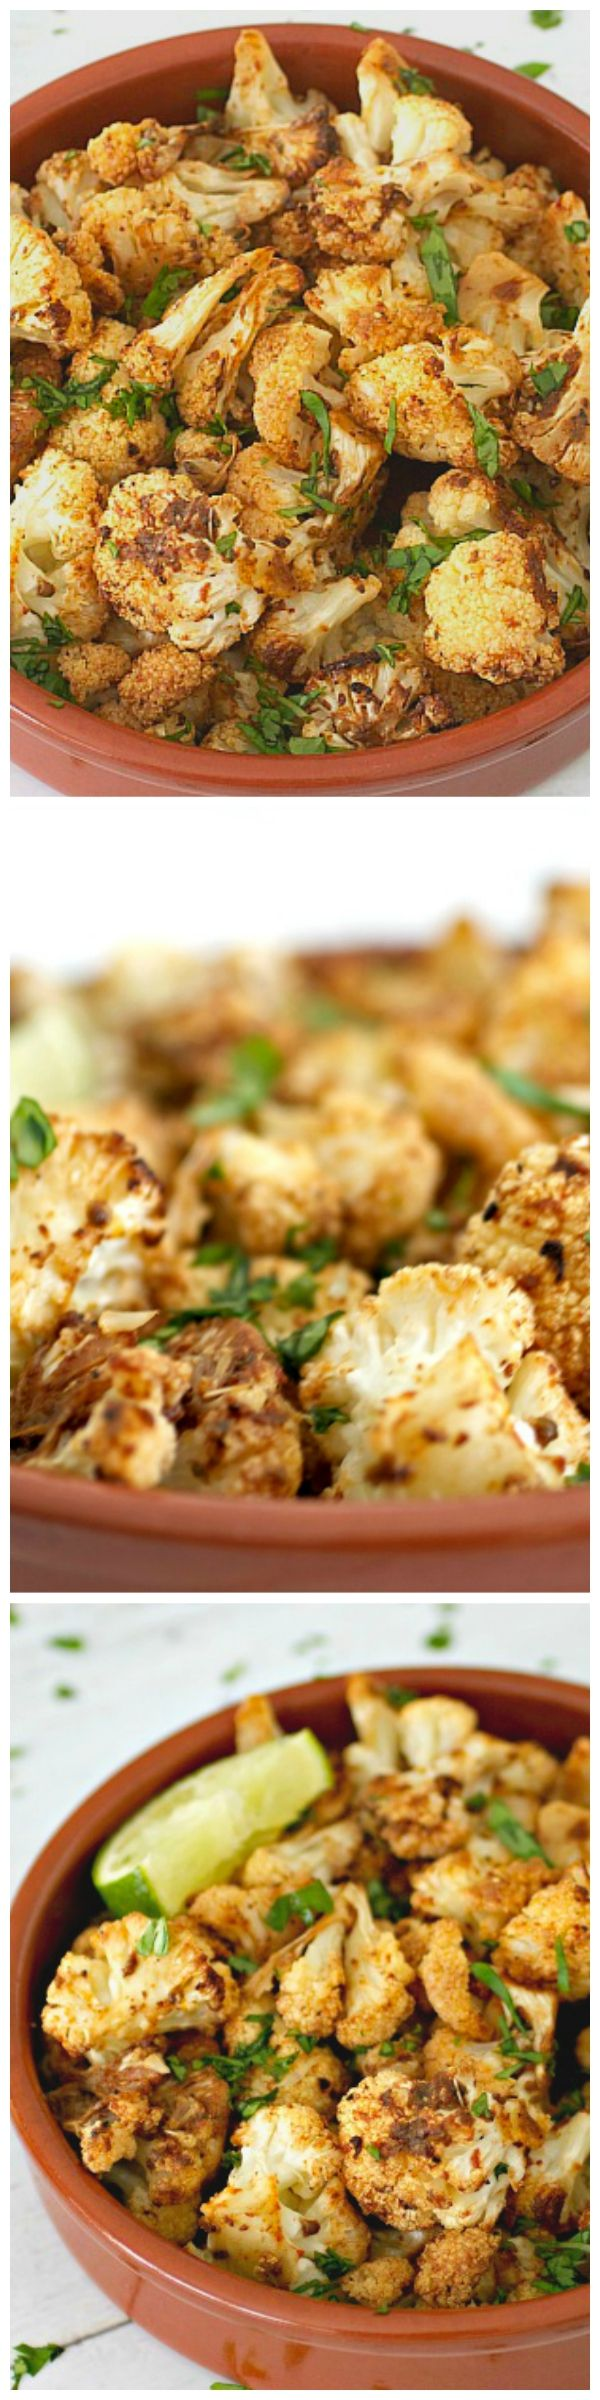 Chipotle Roasted Cauliflower - Transform drab, bland cauliflower into a flavorful, spicy, and healthy side dish.